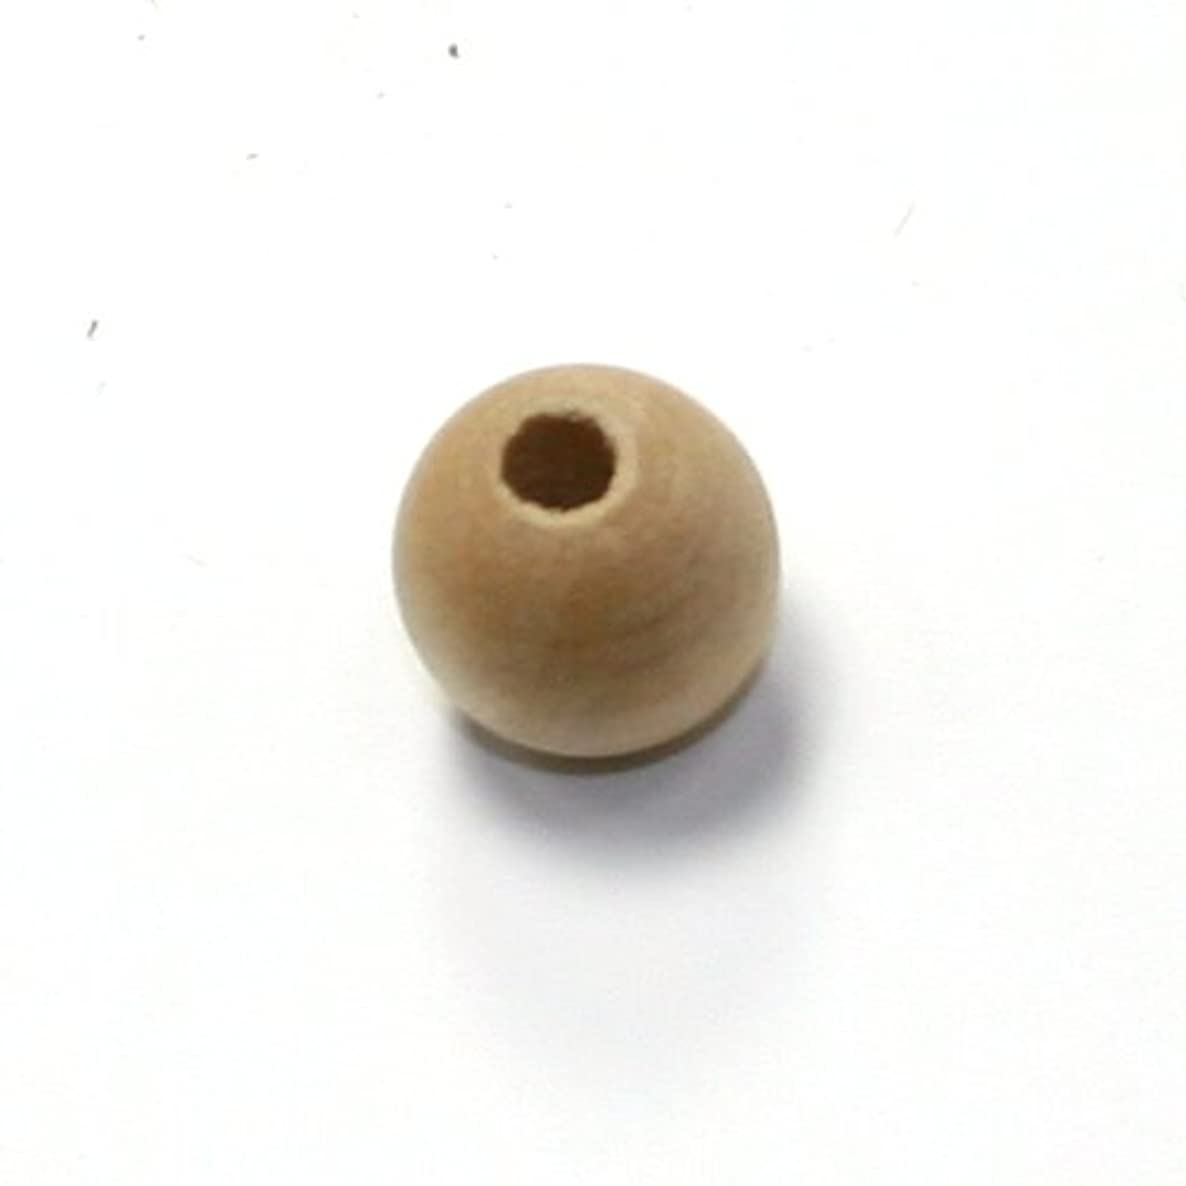 Mylittlewoodshop Pkg of 100 - Bead Round - 1/2 inch in diameter with 5/32 hole unfinished wood (WW-BE1030-100)